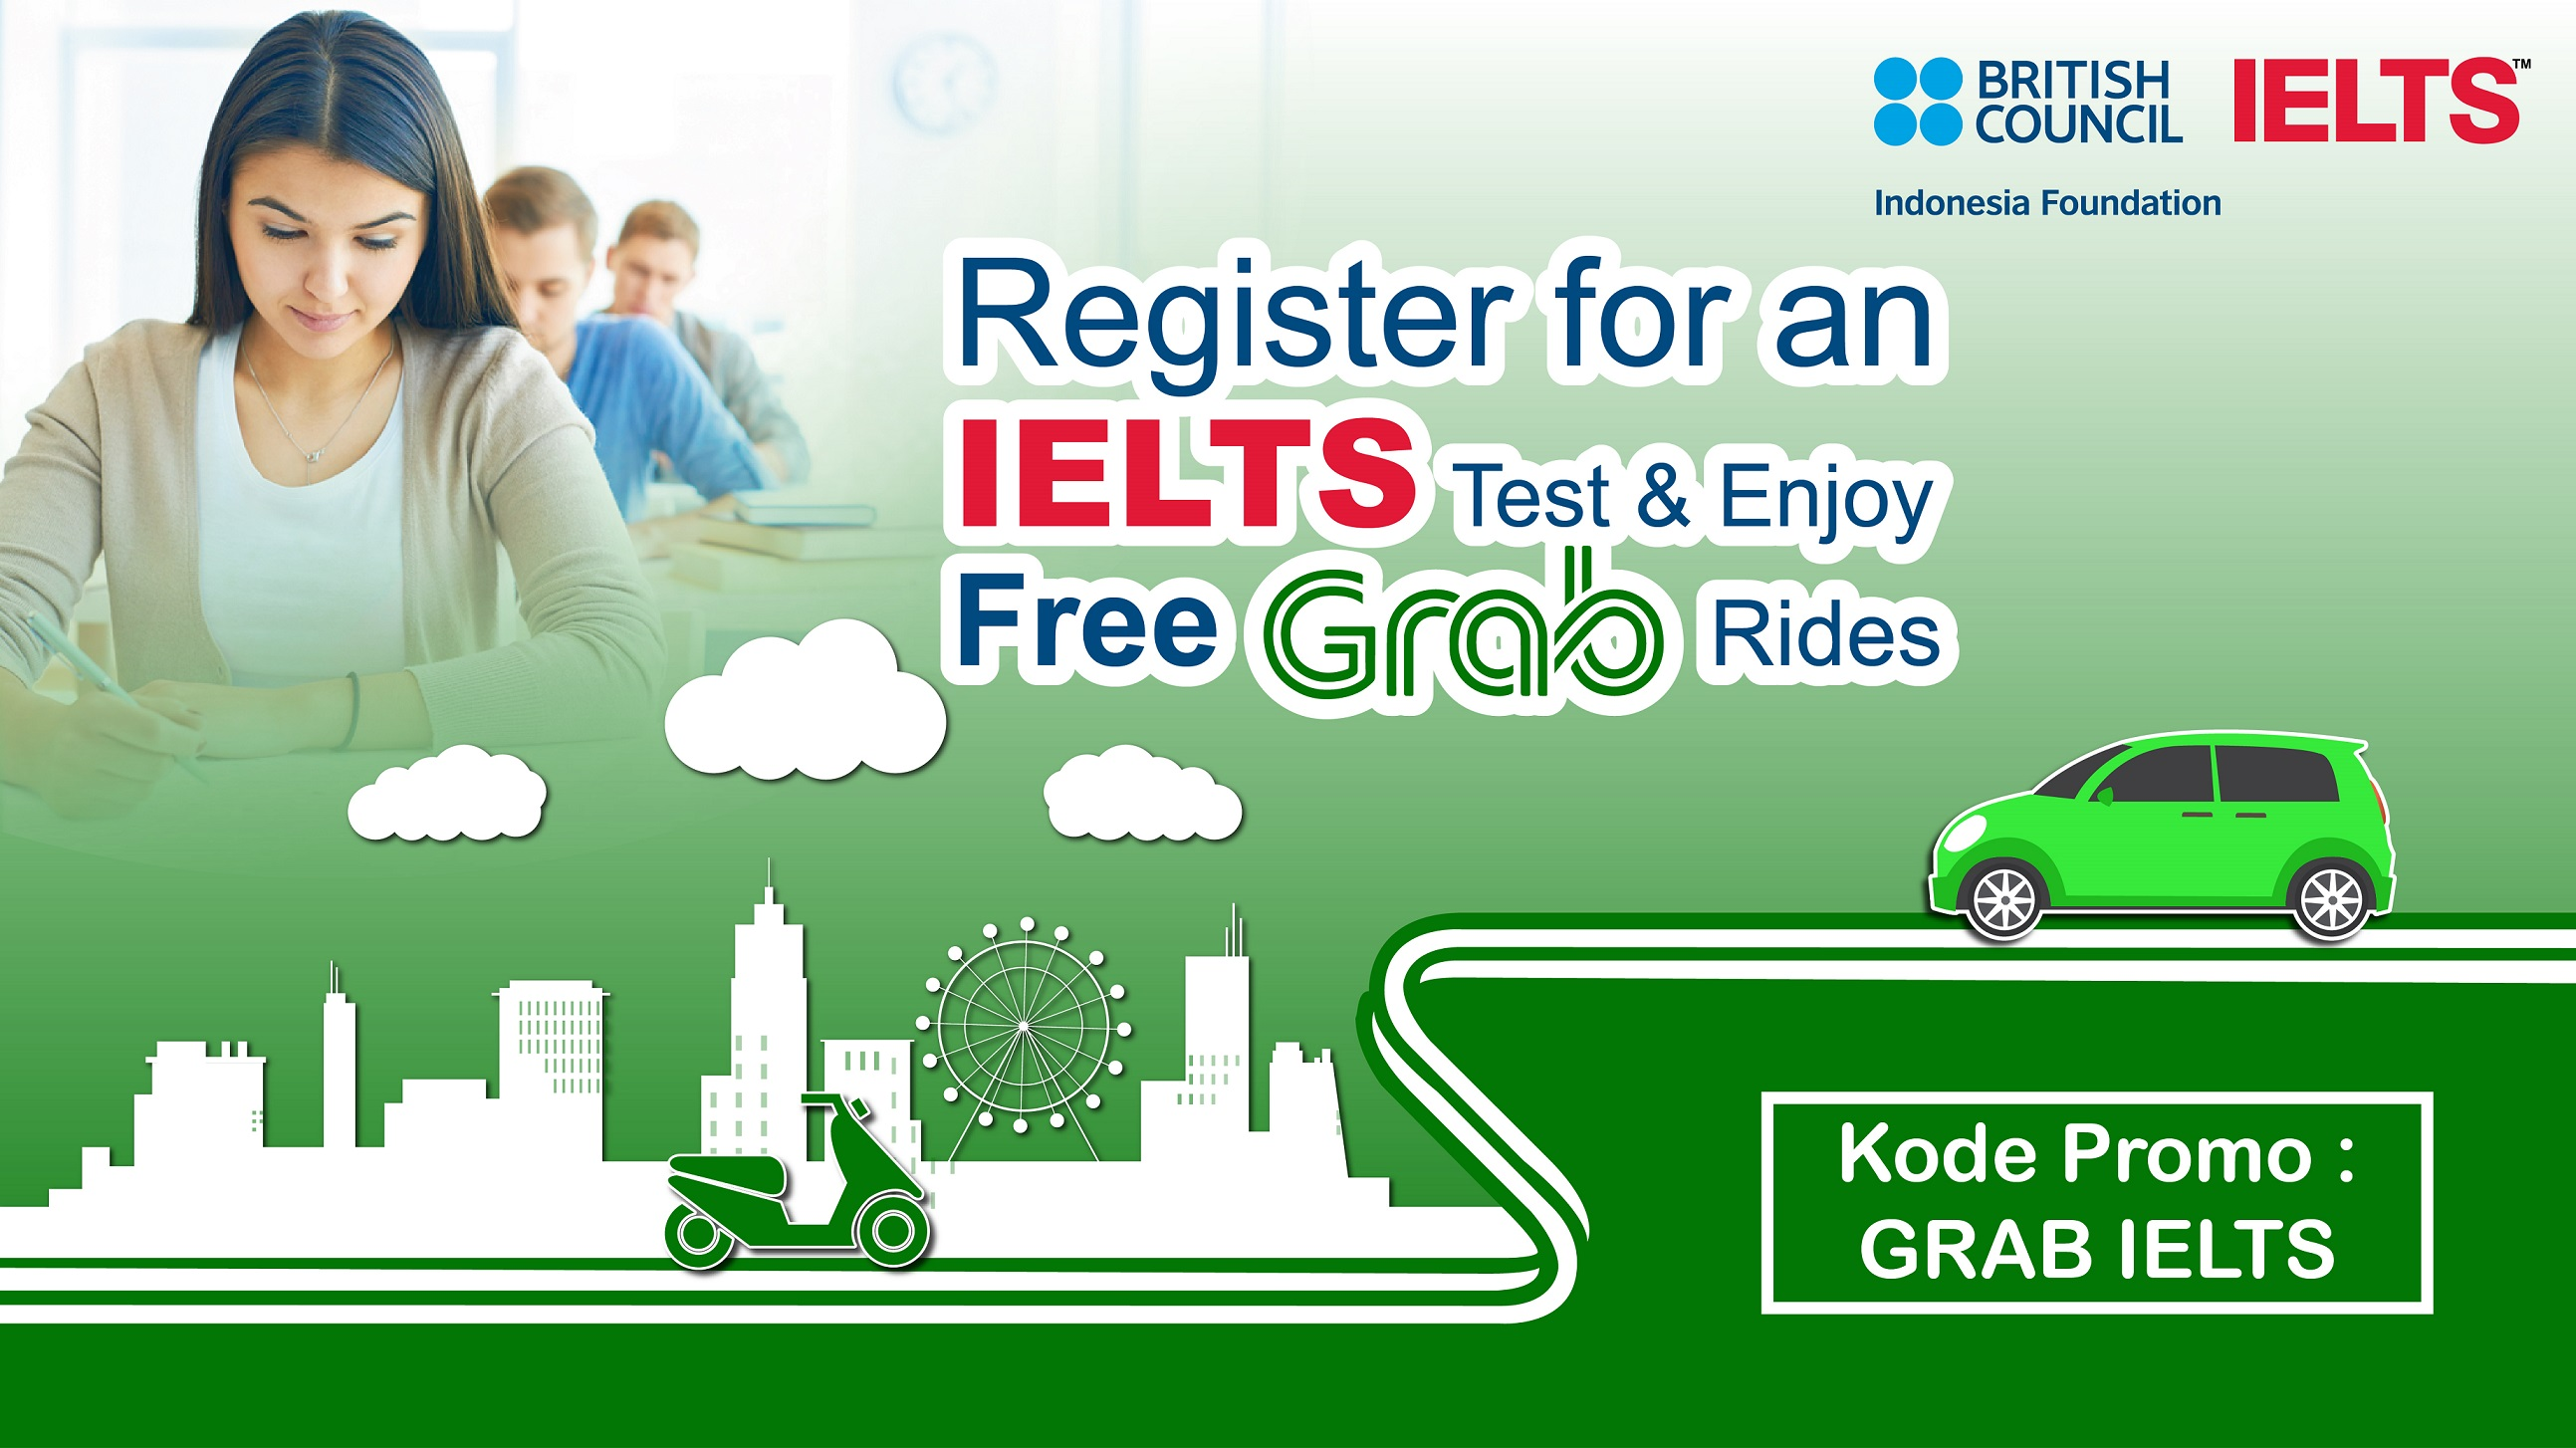 GRAB IELTS Special Offer | IELTS Asia | British Council